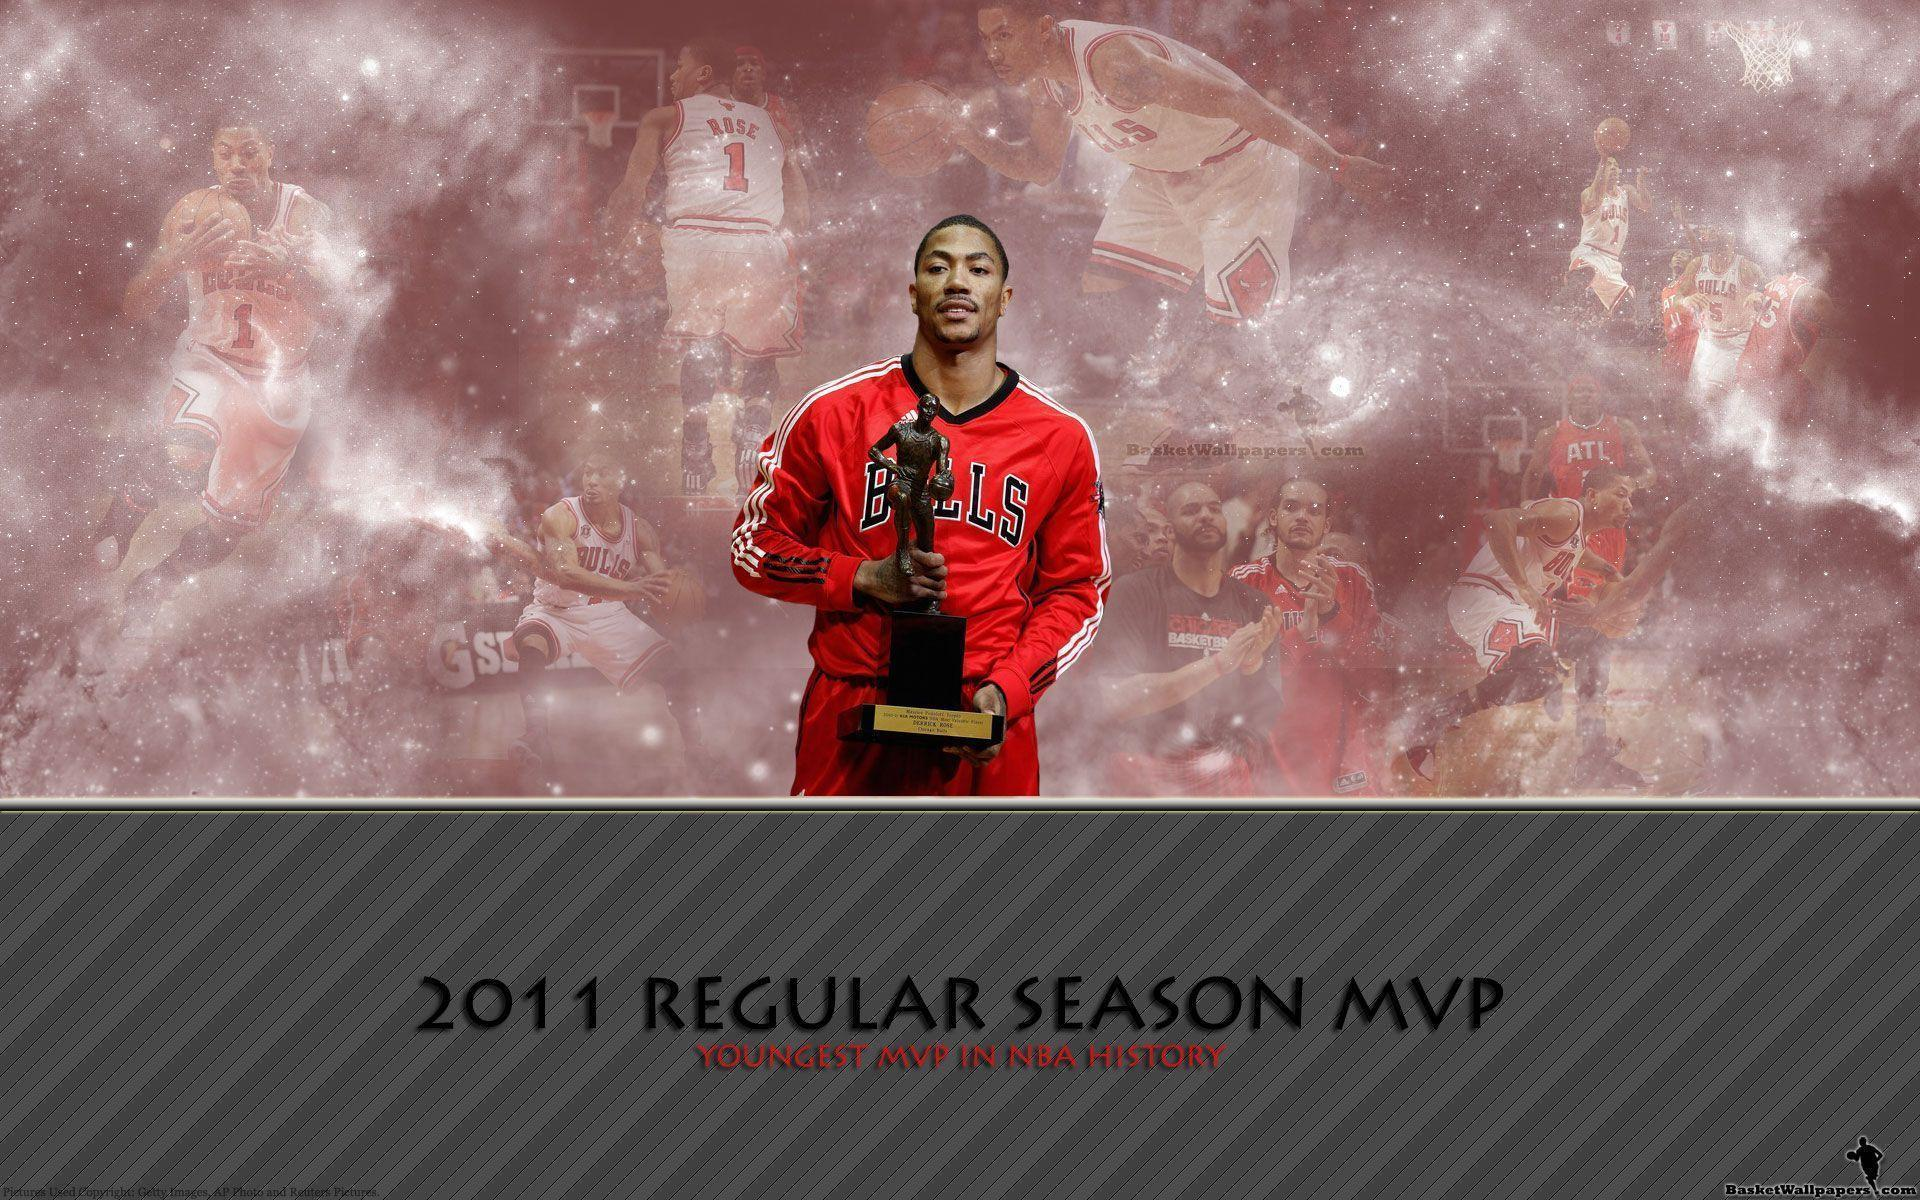 Derrick Rose MVP Wallpapers 1920x1200